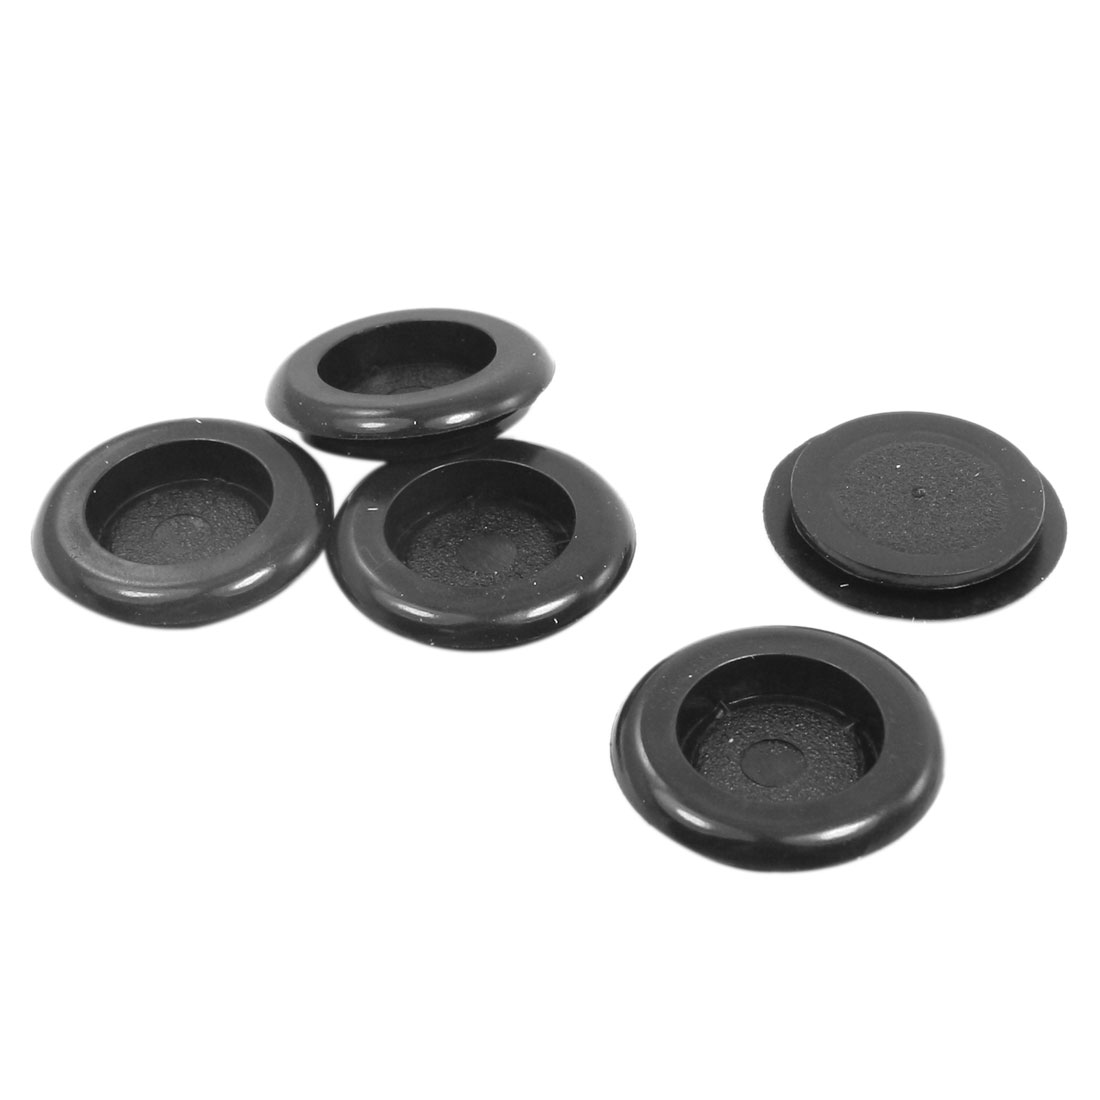 5 Pcs Black Armature Wire Single Sided 18mm x 22mm Rubber Grommet